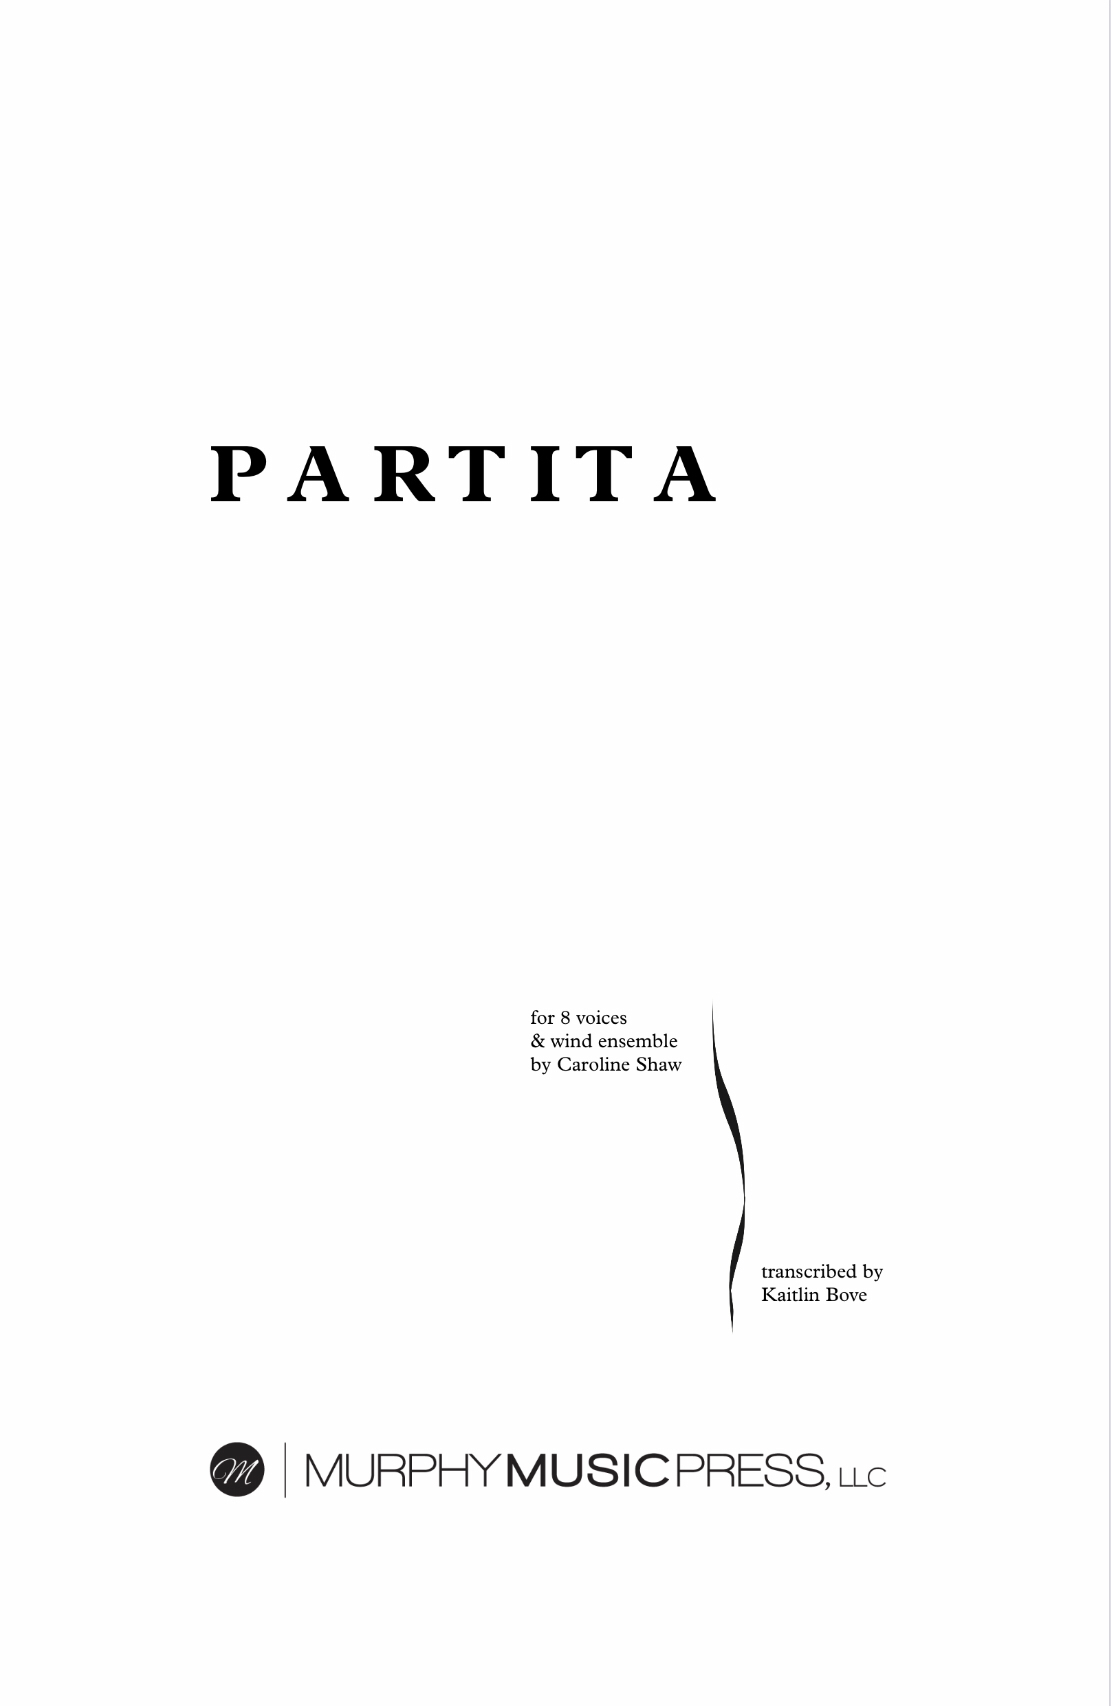 Partita For 8 Voices And Wind Ensemble (Parts Rental Only) by Caroline Shaw, arr Bove